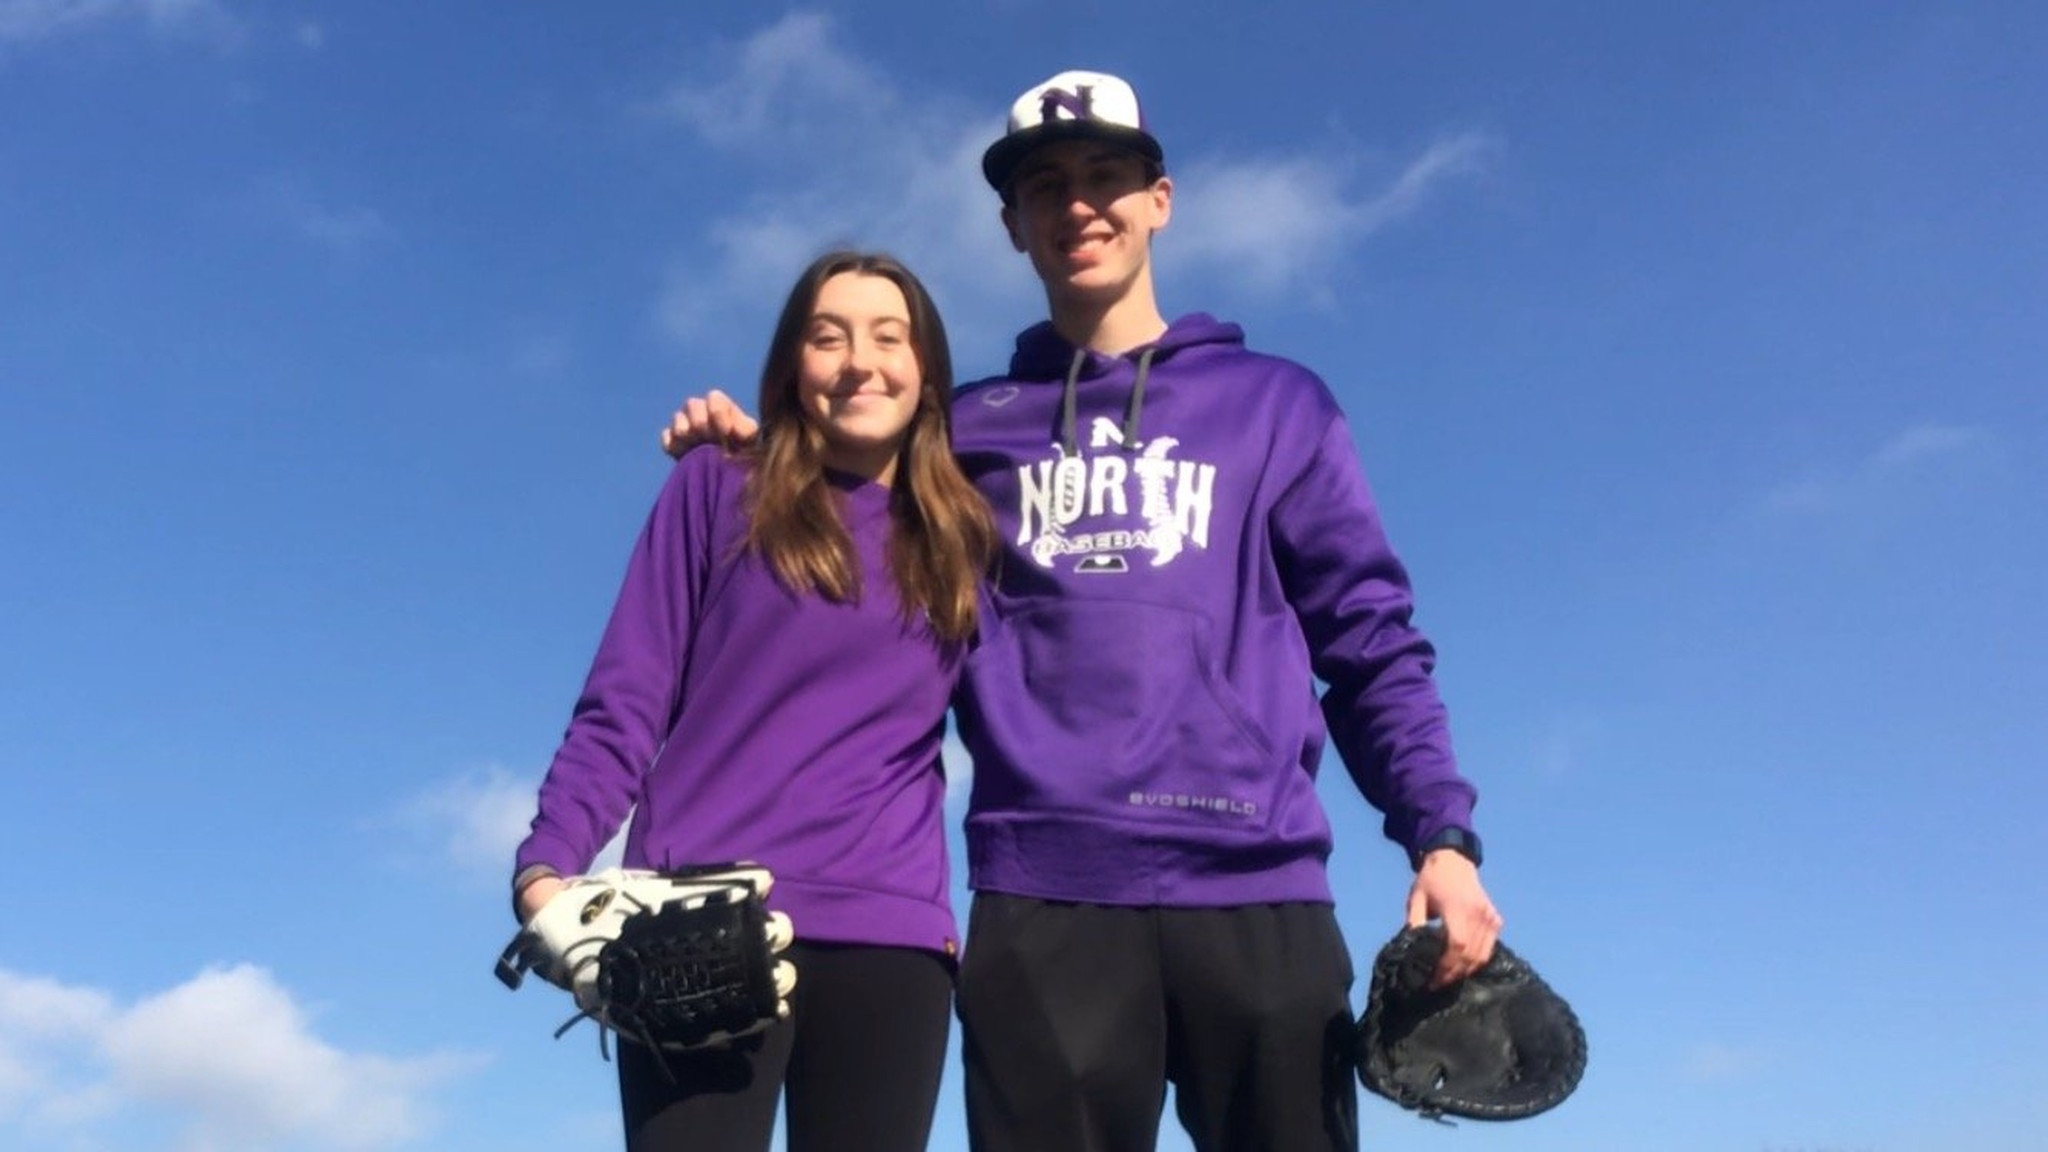 High school athletes aim to stay in shape while complying with stay-at-home order